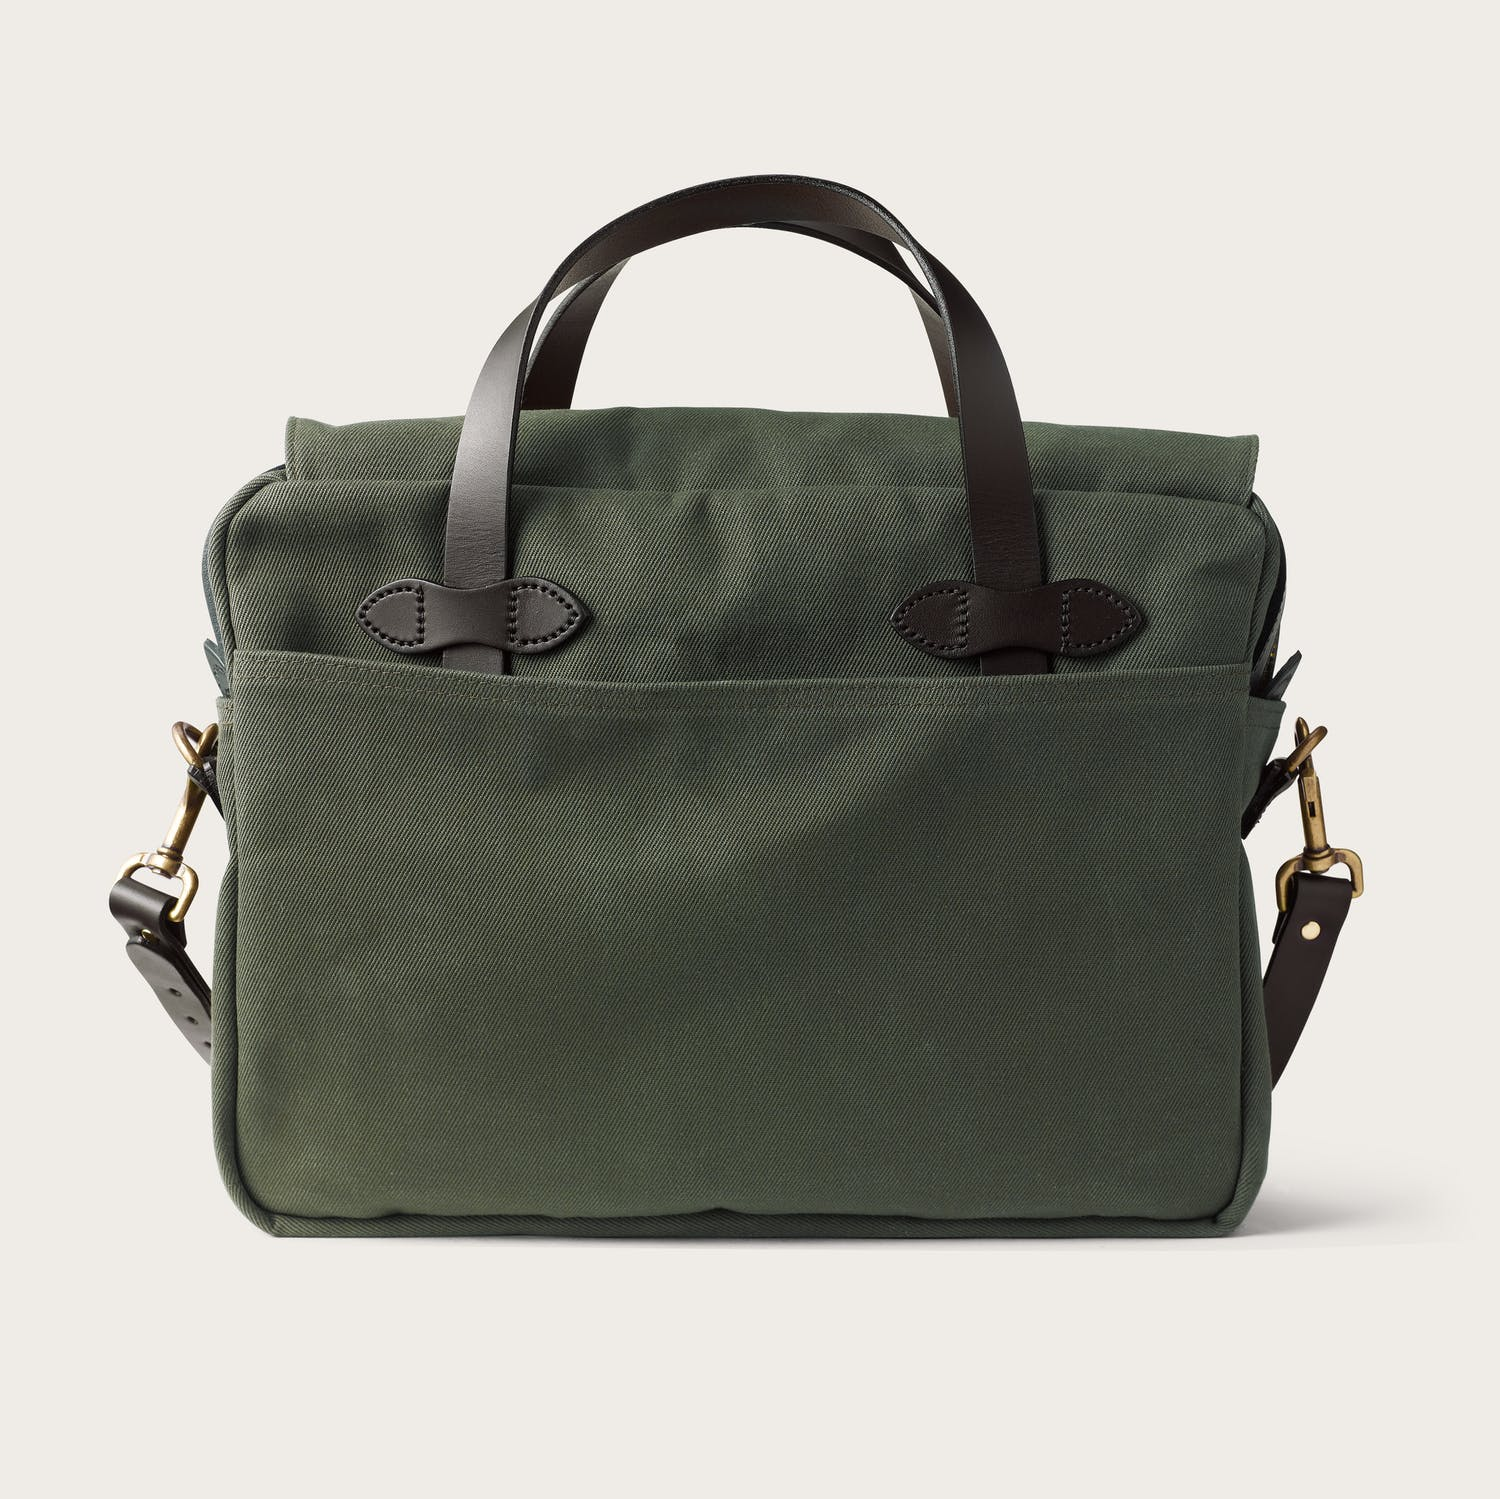 Filson - Original Briefcase - Otter Green - The Populess Company